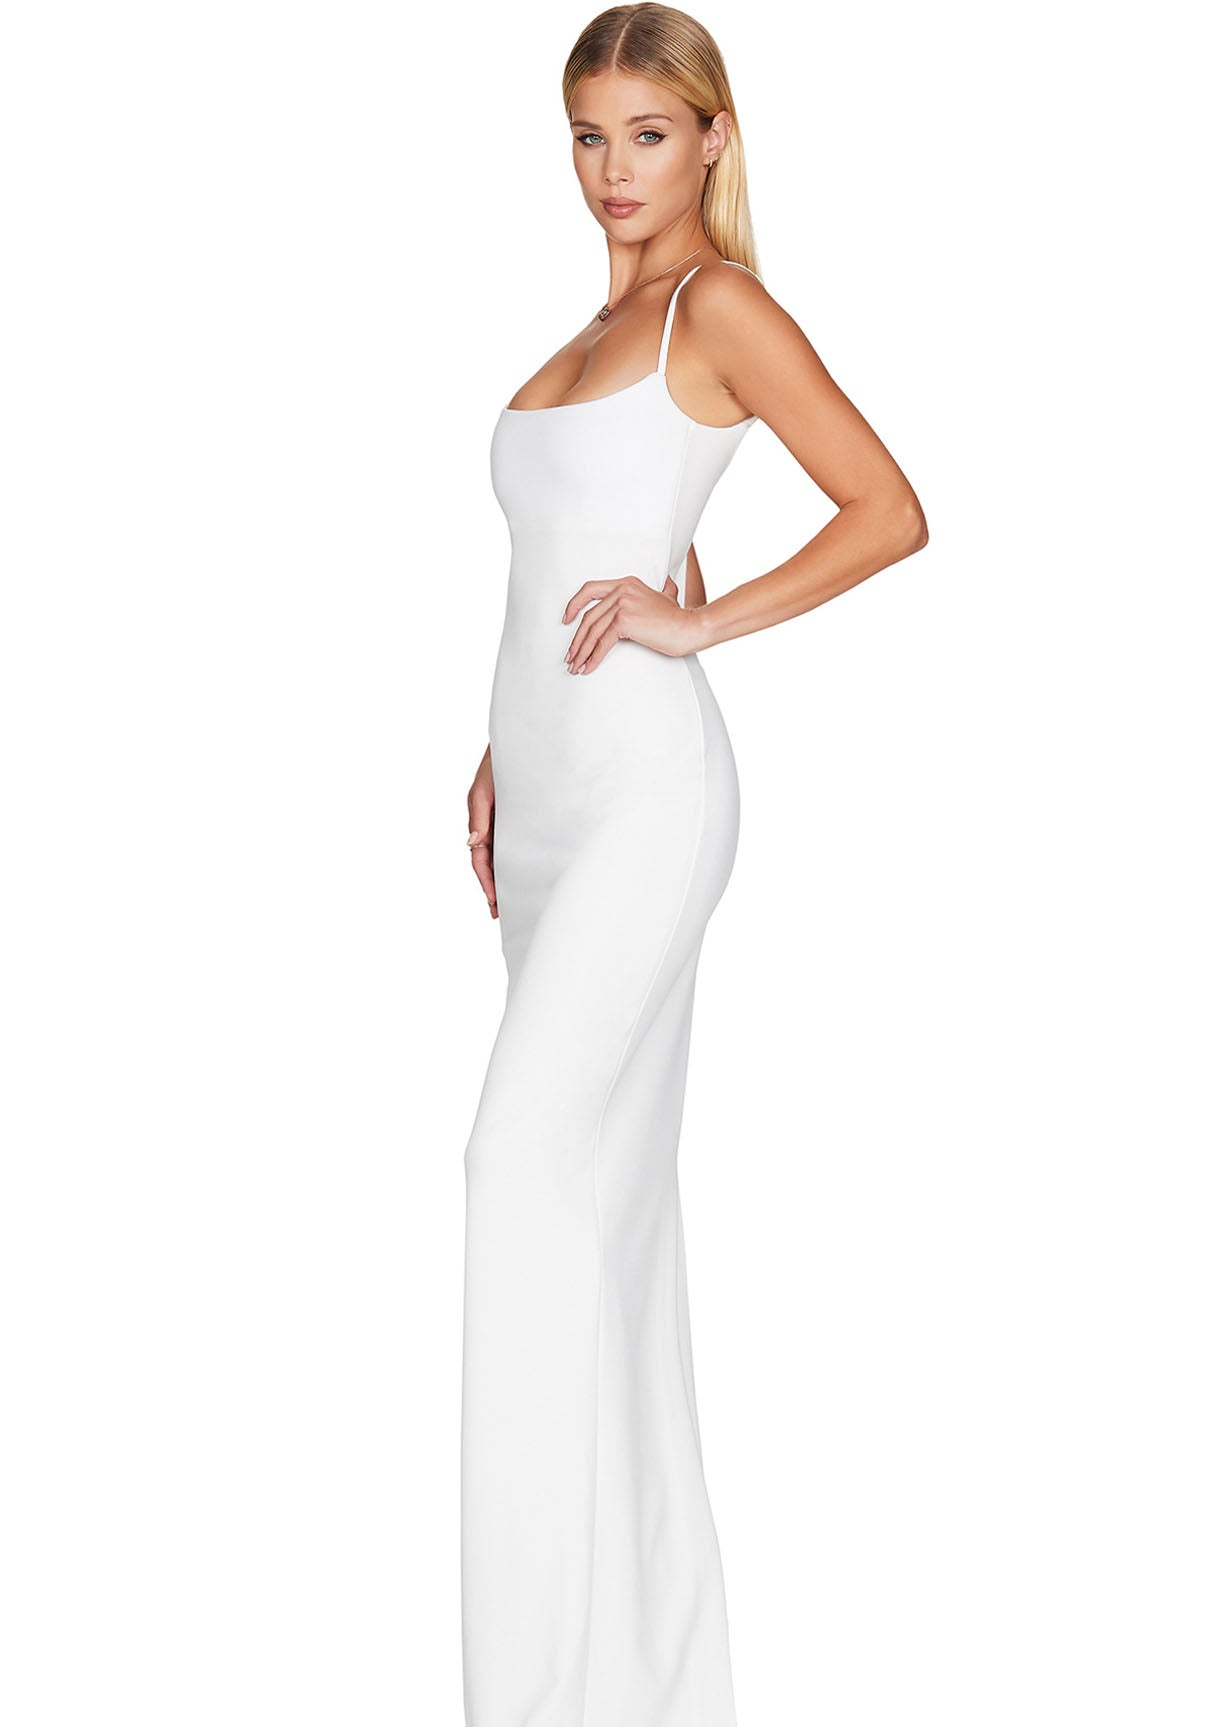 NOOKIE - Bailey Gown Ivory (8)